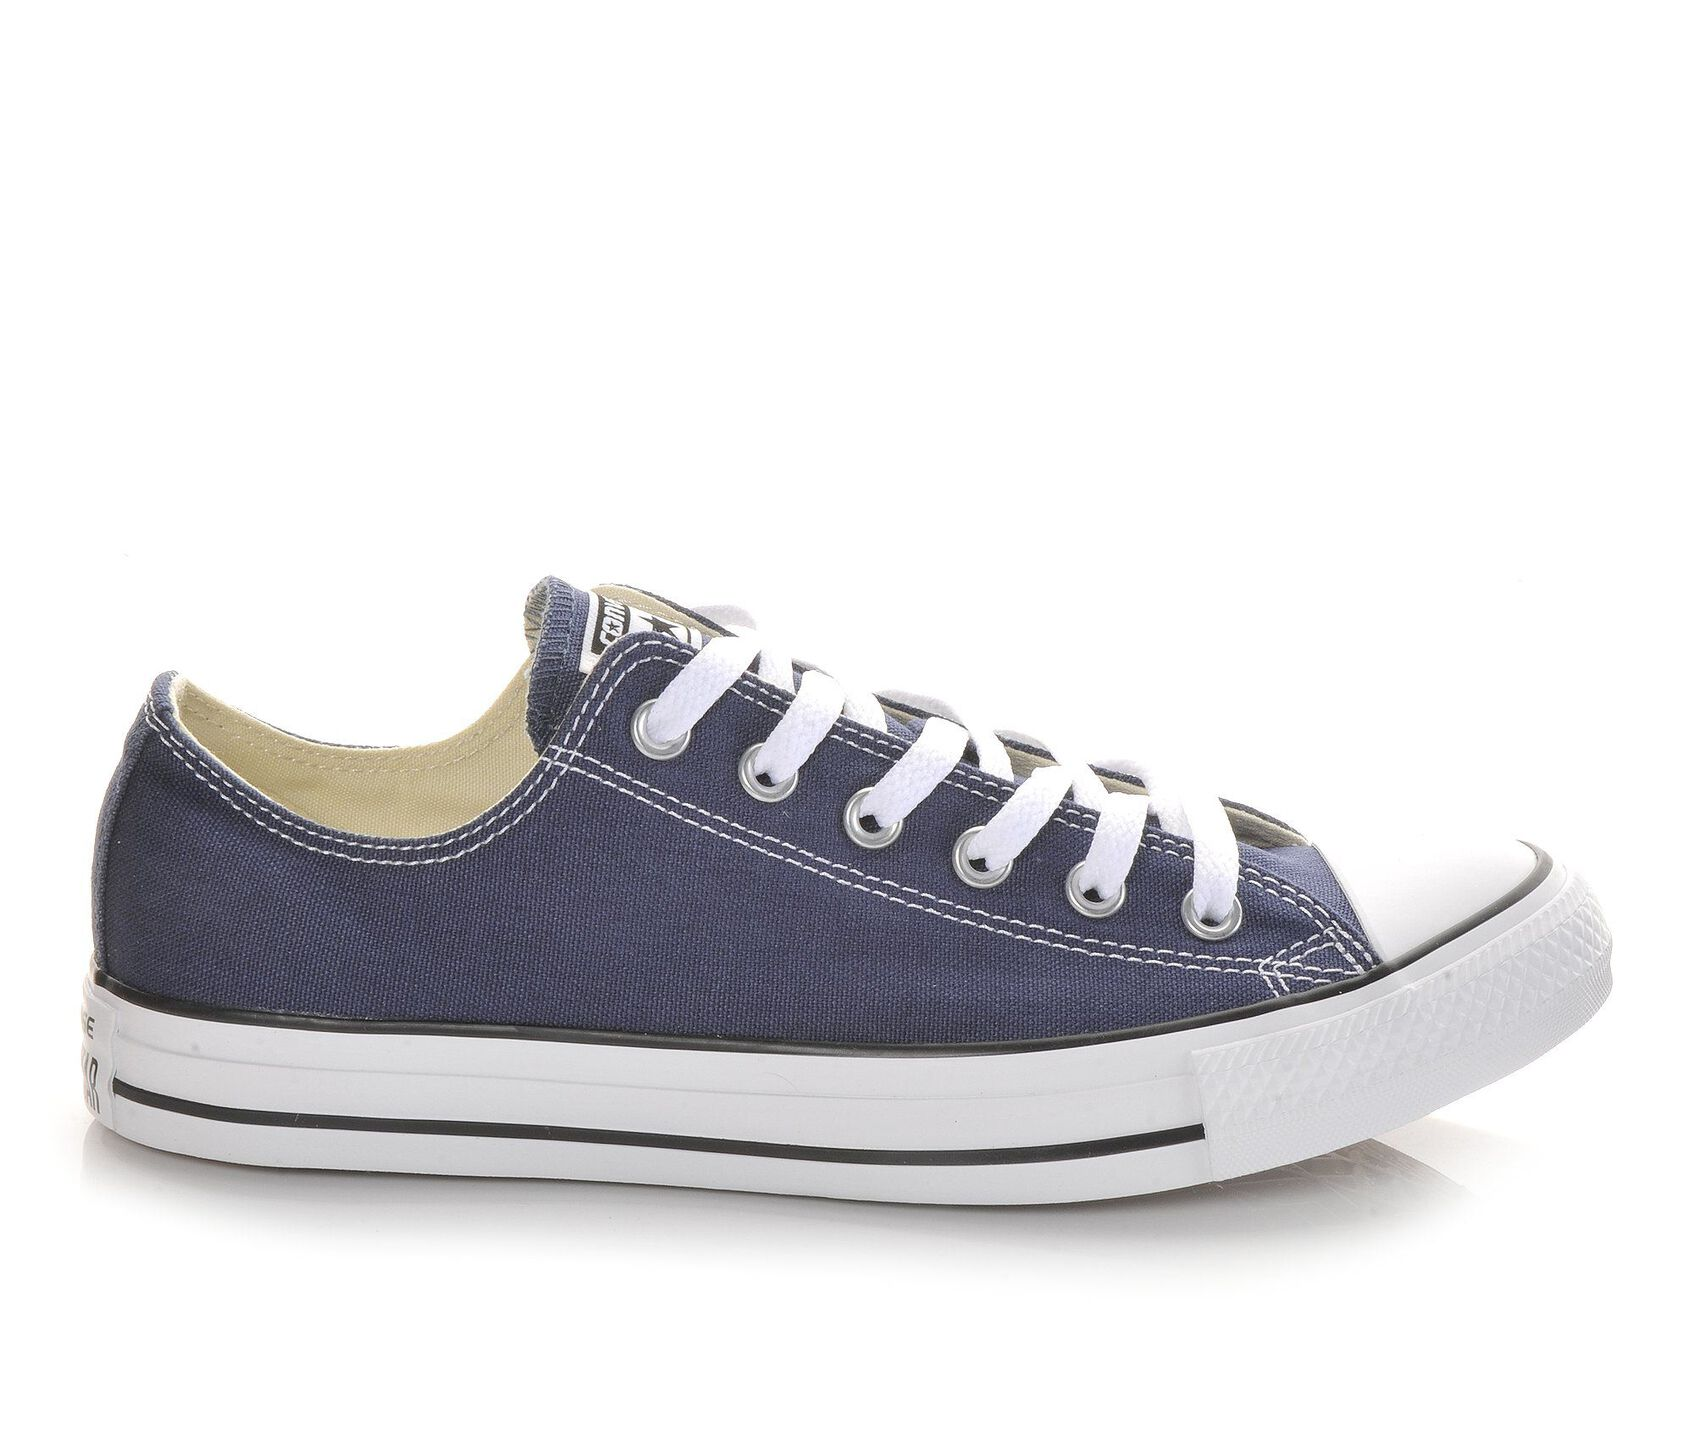 8f29e8b9dc695b Adults  Converse Chuck Taylor All Star Canvas Ox Core Sneakers ...